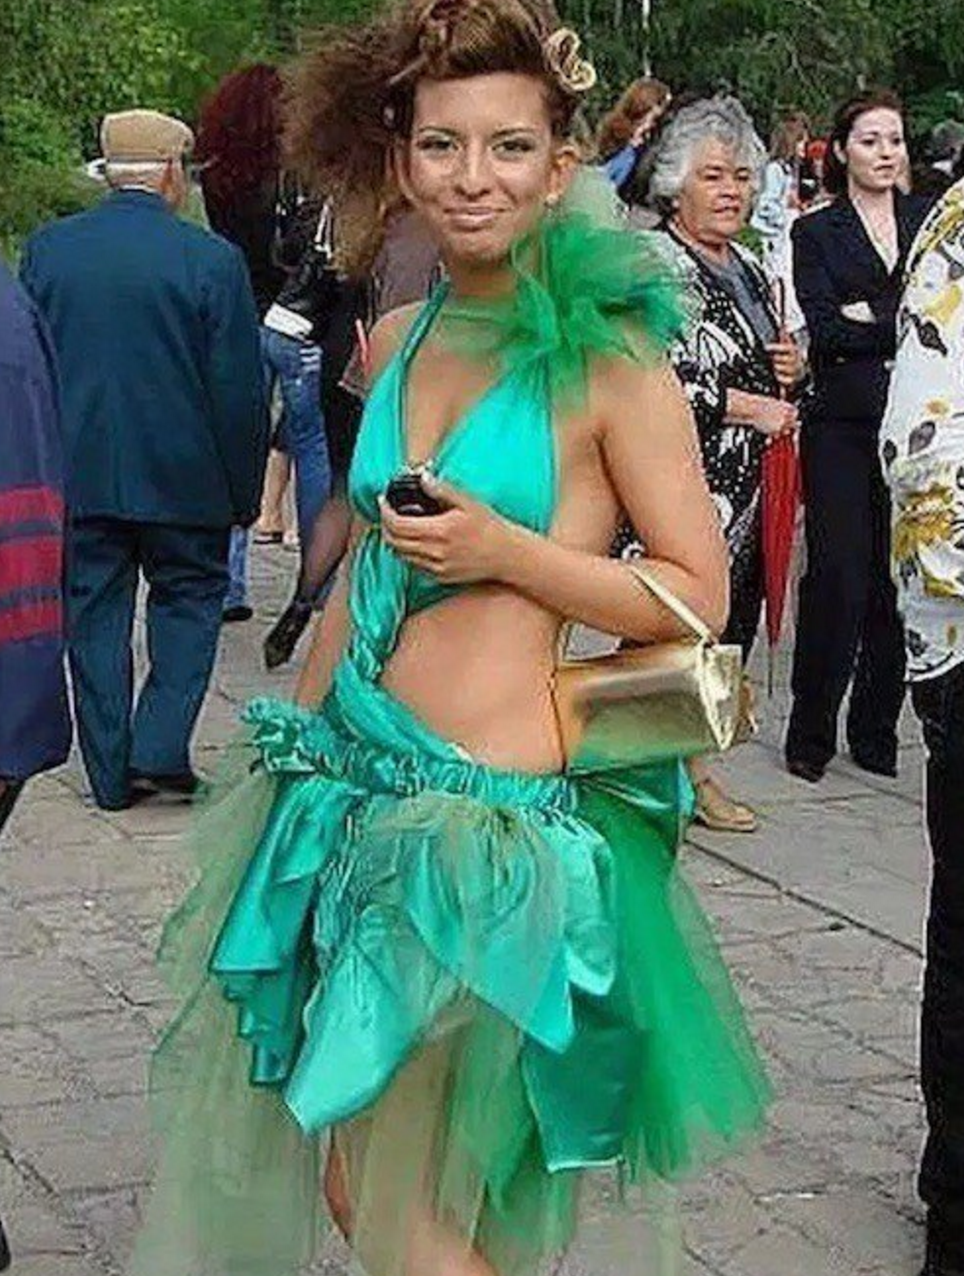 bulgarian prom disasters | Funny | Pinterest | Bulgarian and Prom